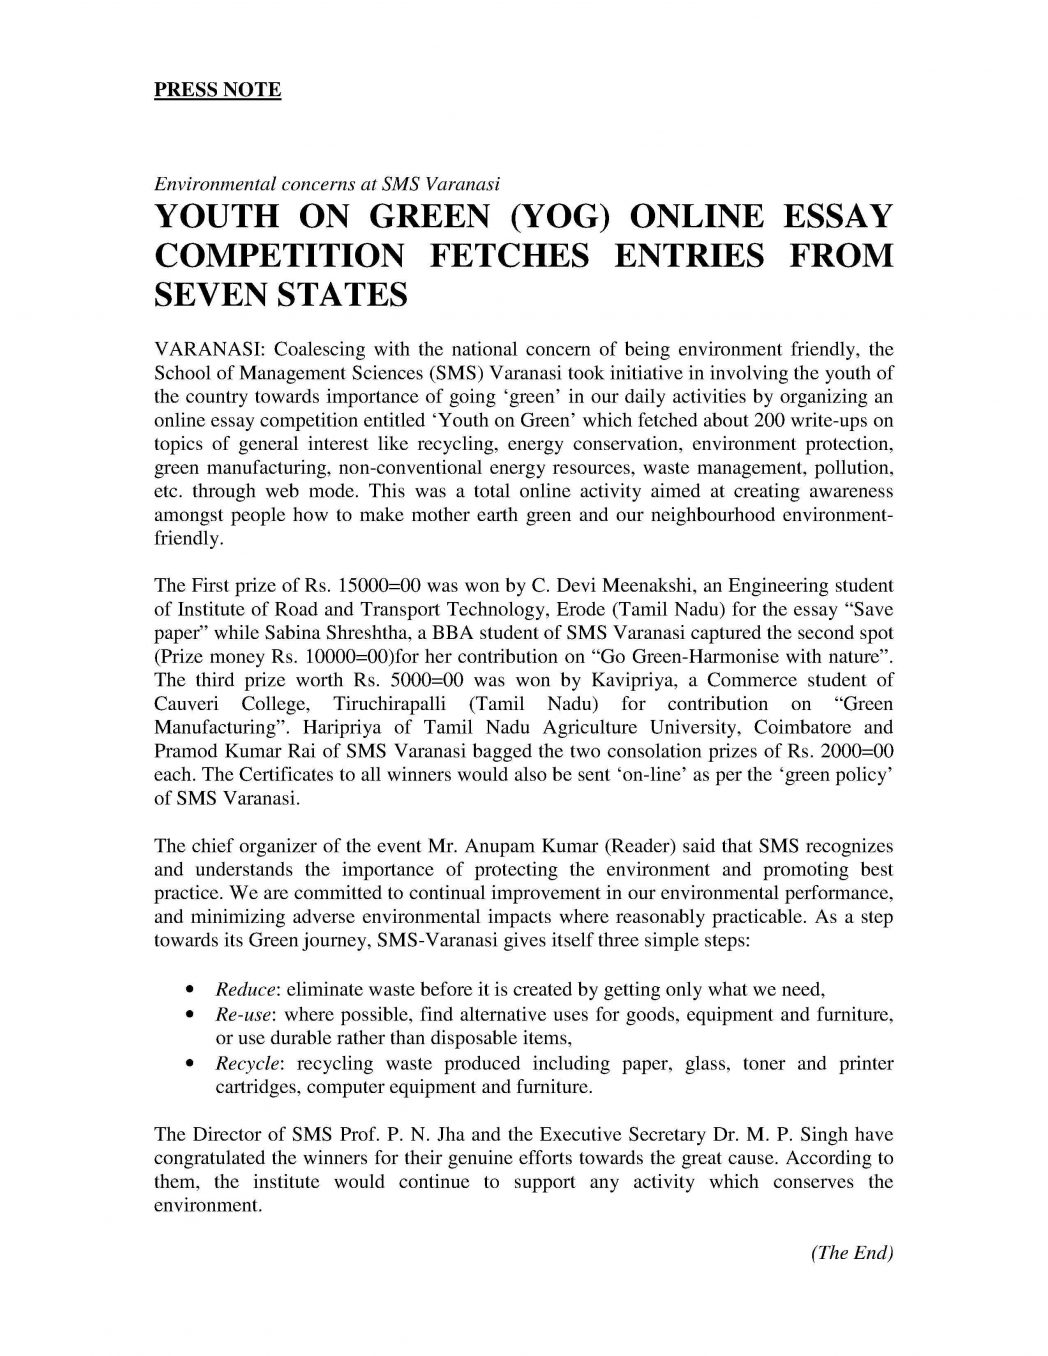 020 Best Essays For College Essay On Good Habits How Tot Application Online Yog Press Re About Yourself Examples Your Background Failure Prompt Off Hook 1048x1356 Example Amazing To Start An With A Do U Book Autobiography Full